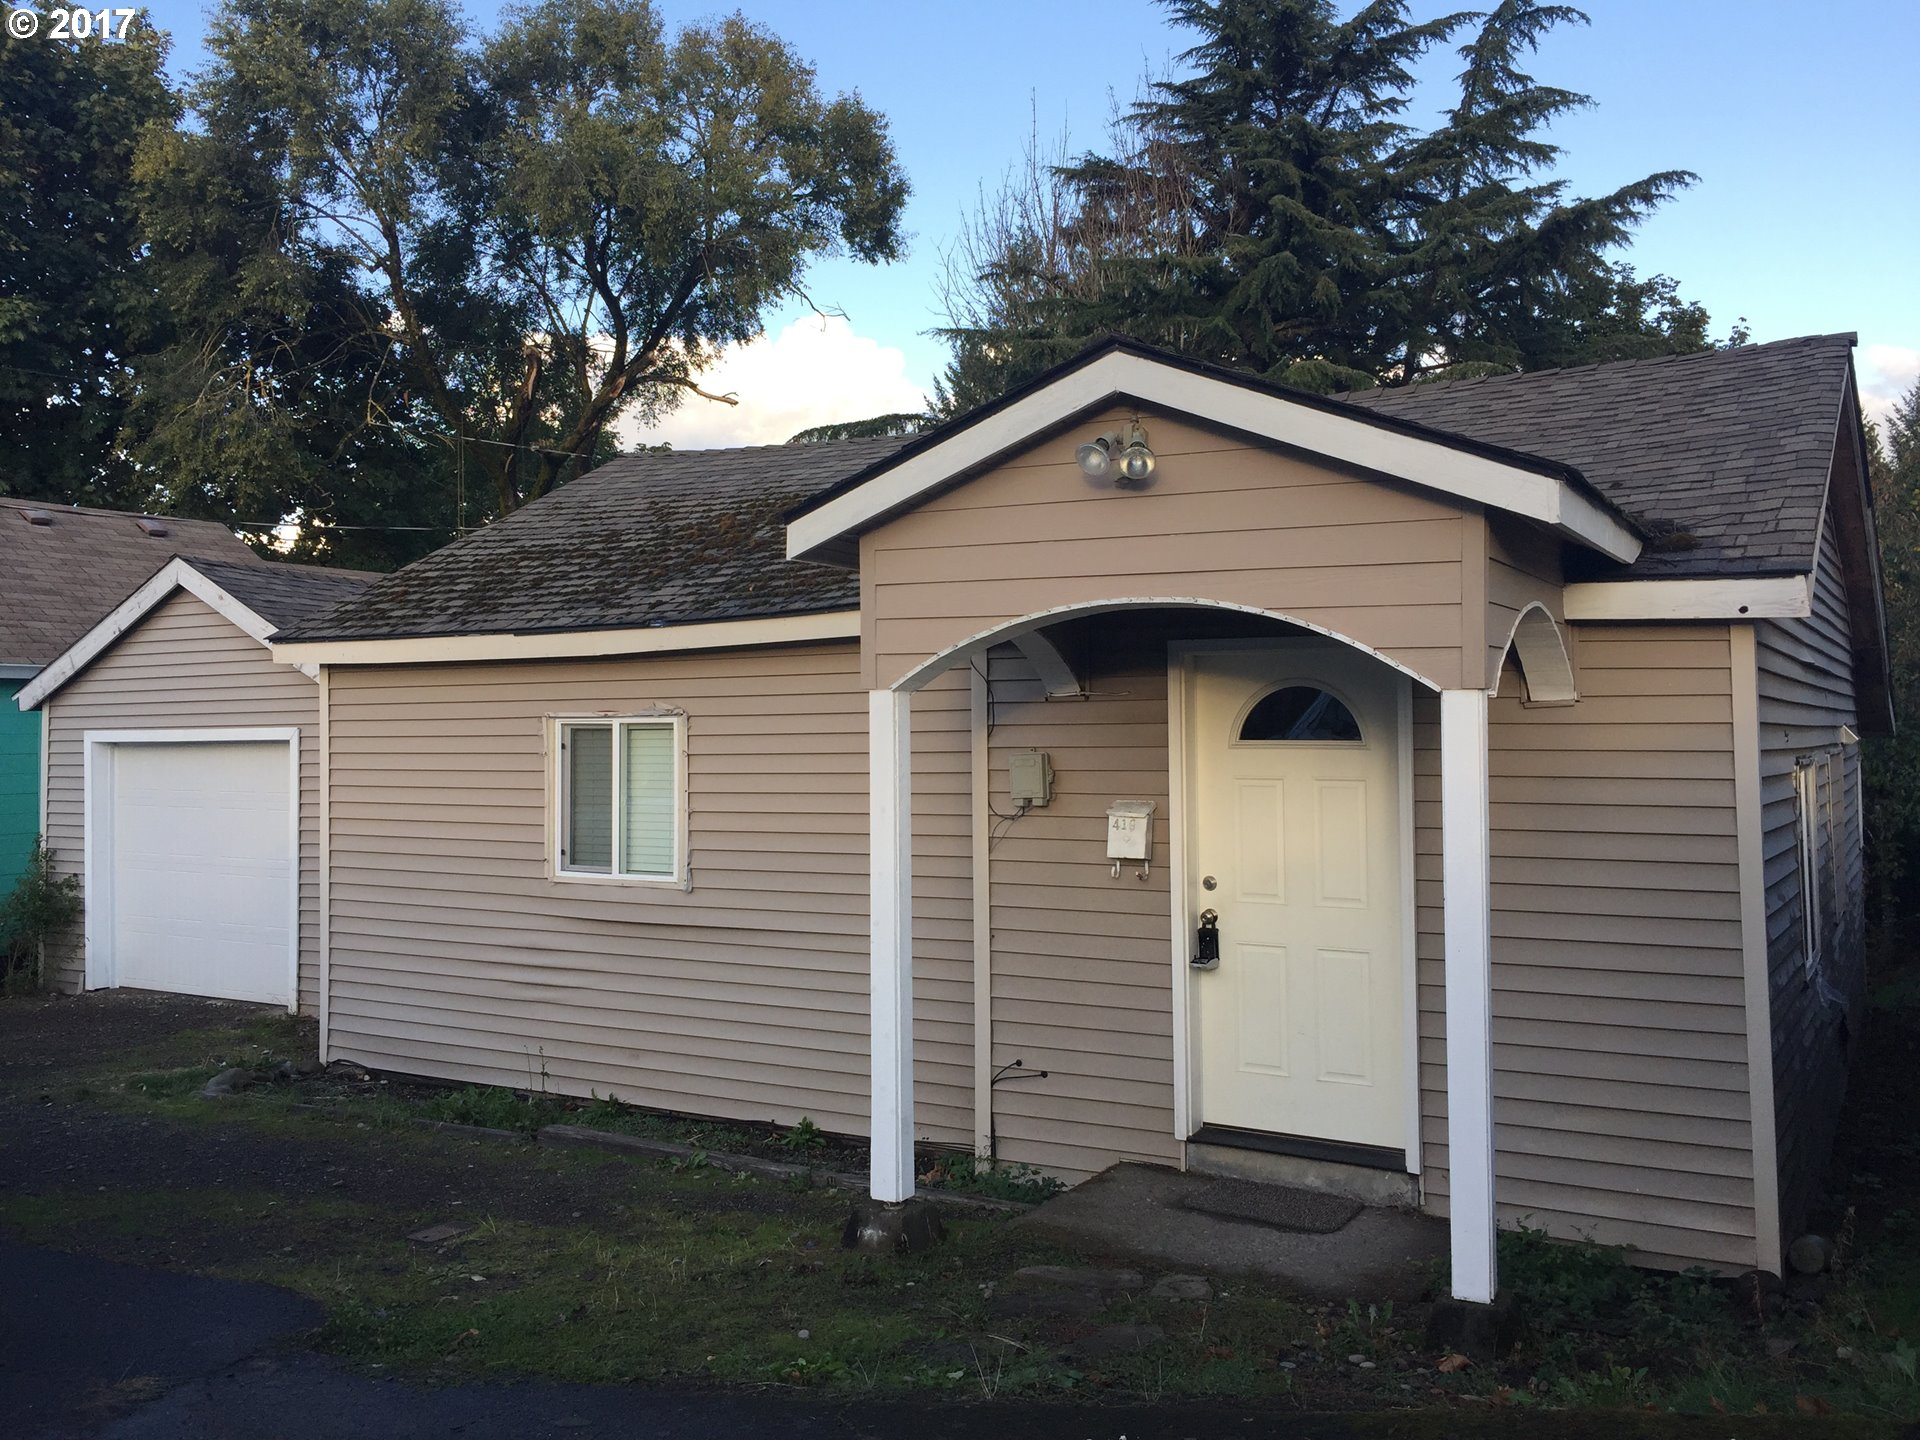 419 IRVING ST, Oregon City, OR 97045